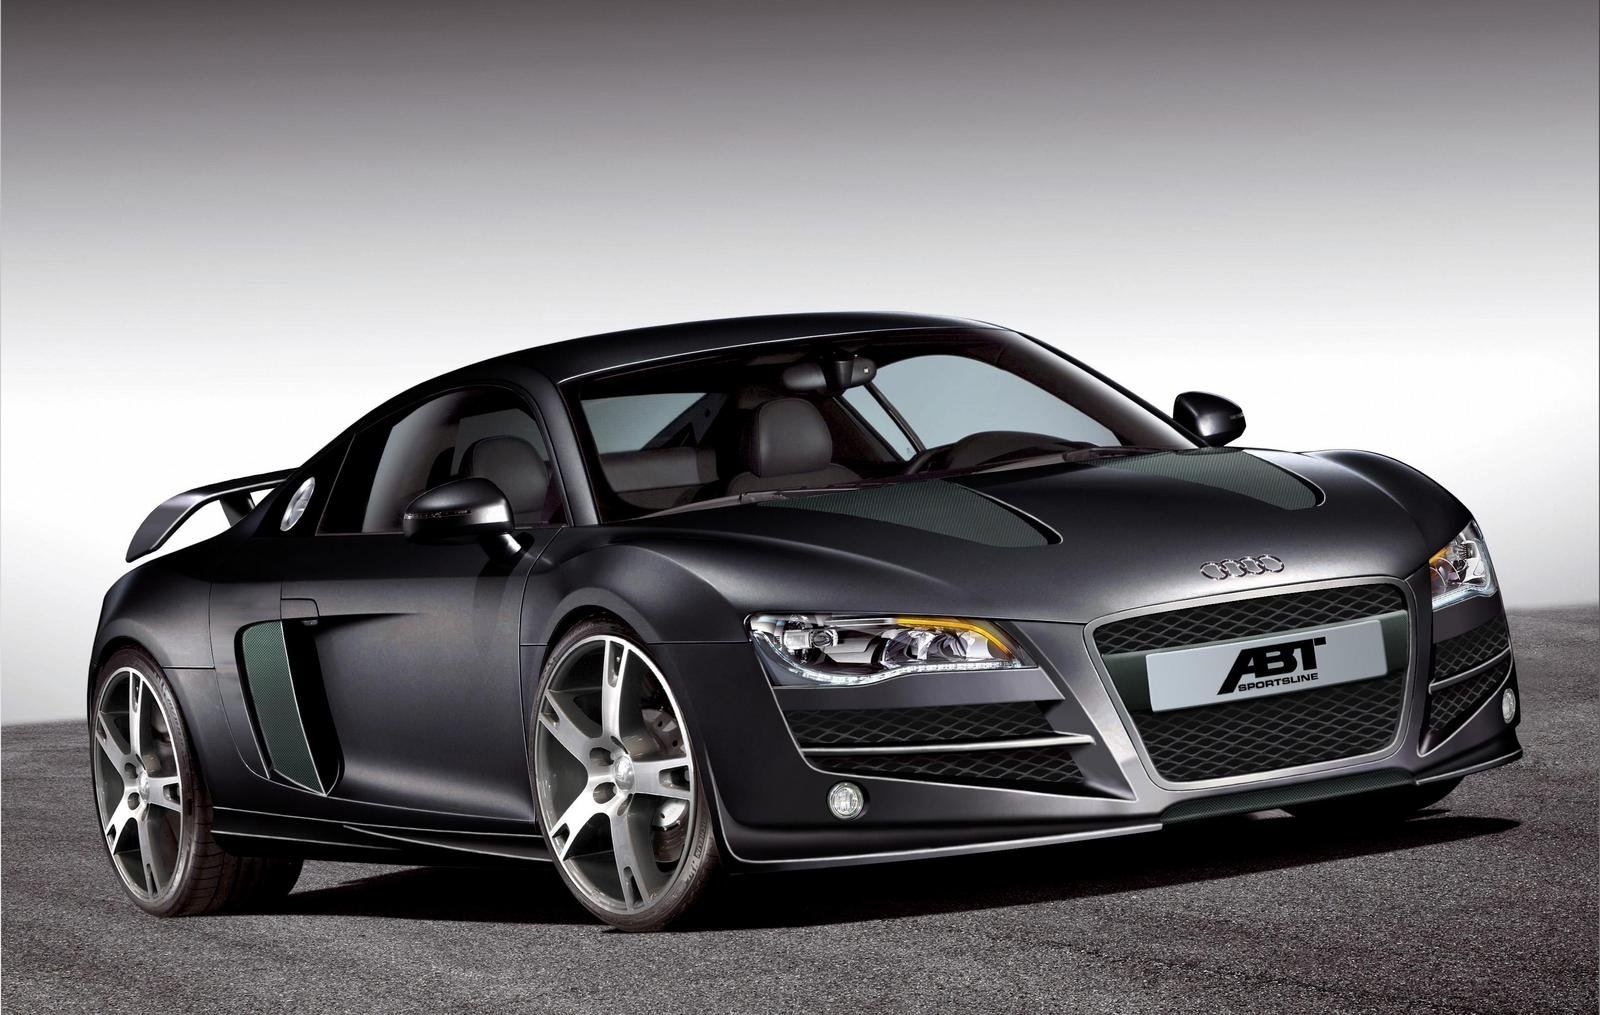 2008 Abt Audi R8 Cars Pictures Autocars Wallpapers